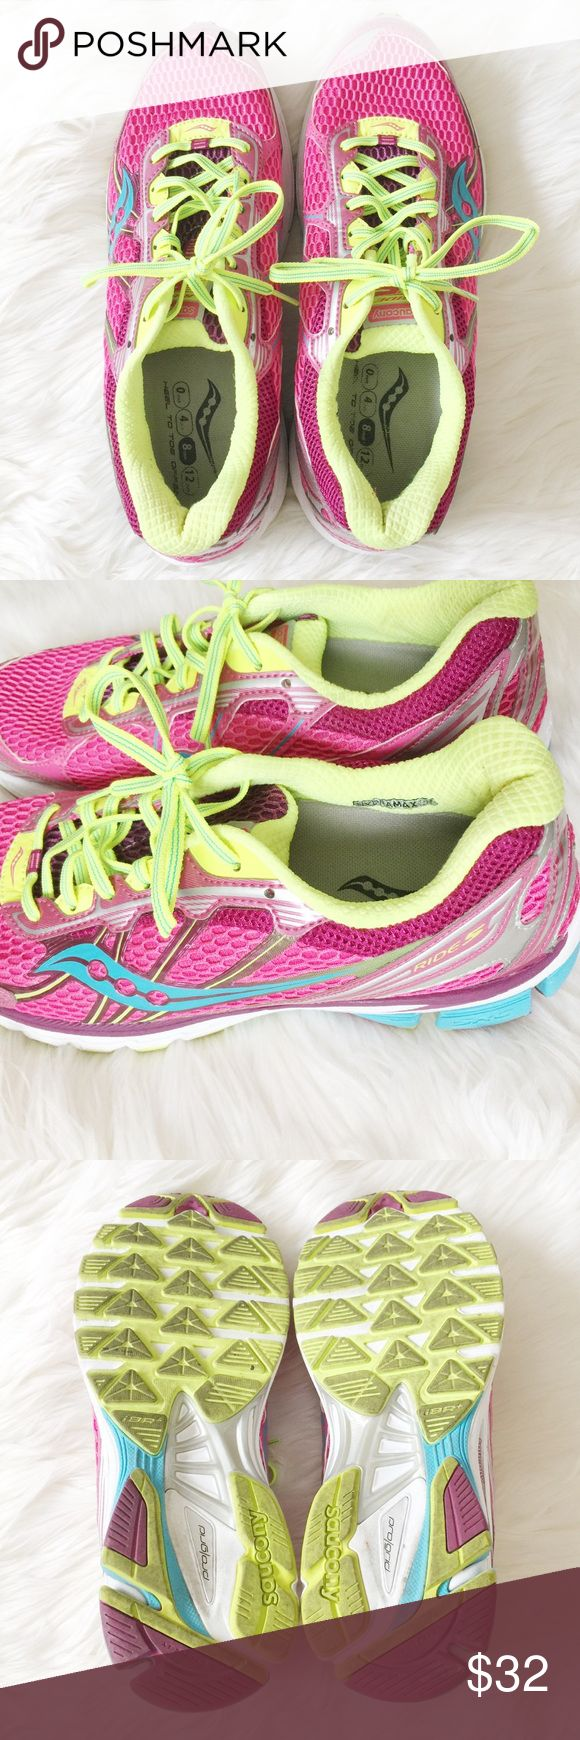 Saucony Neon Running Shoes Funky and fun Saucany neon running shoes perfect for working out in style! Worn twice. Bundle more to save more. All reasonable offers accepted 💖✨ Saucony Shoes Athletic Shoes